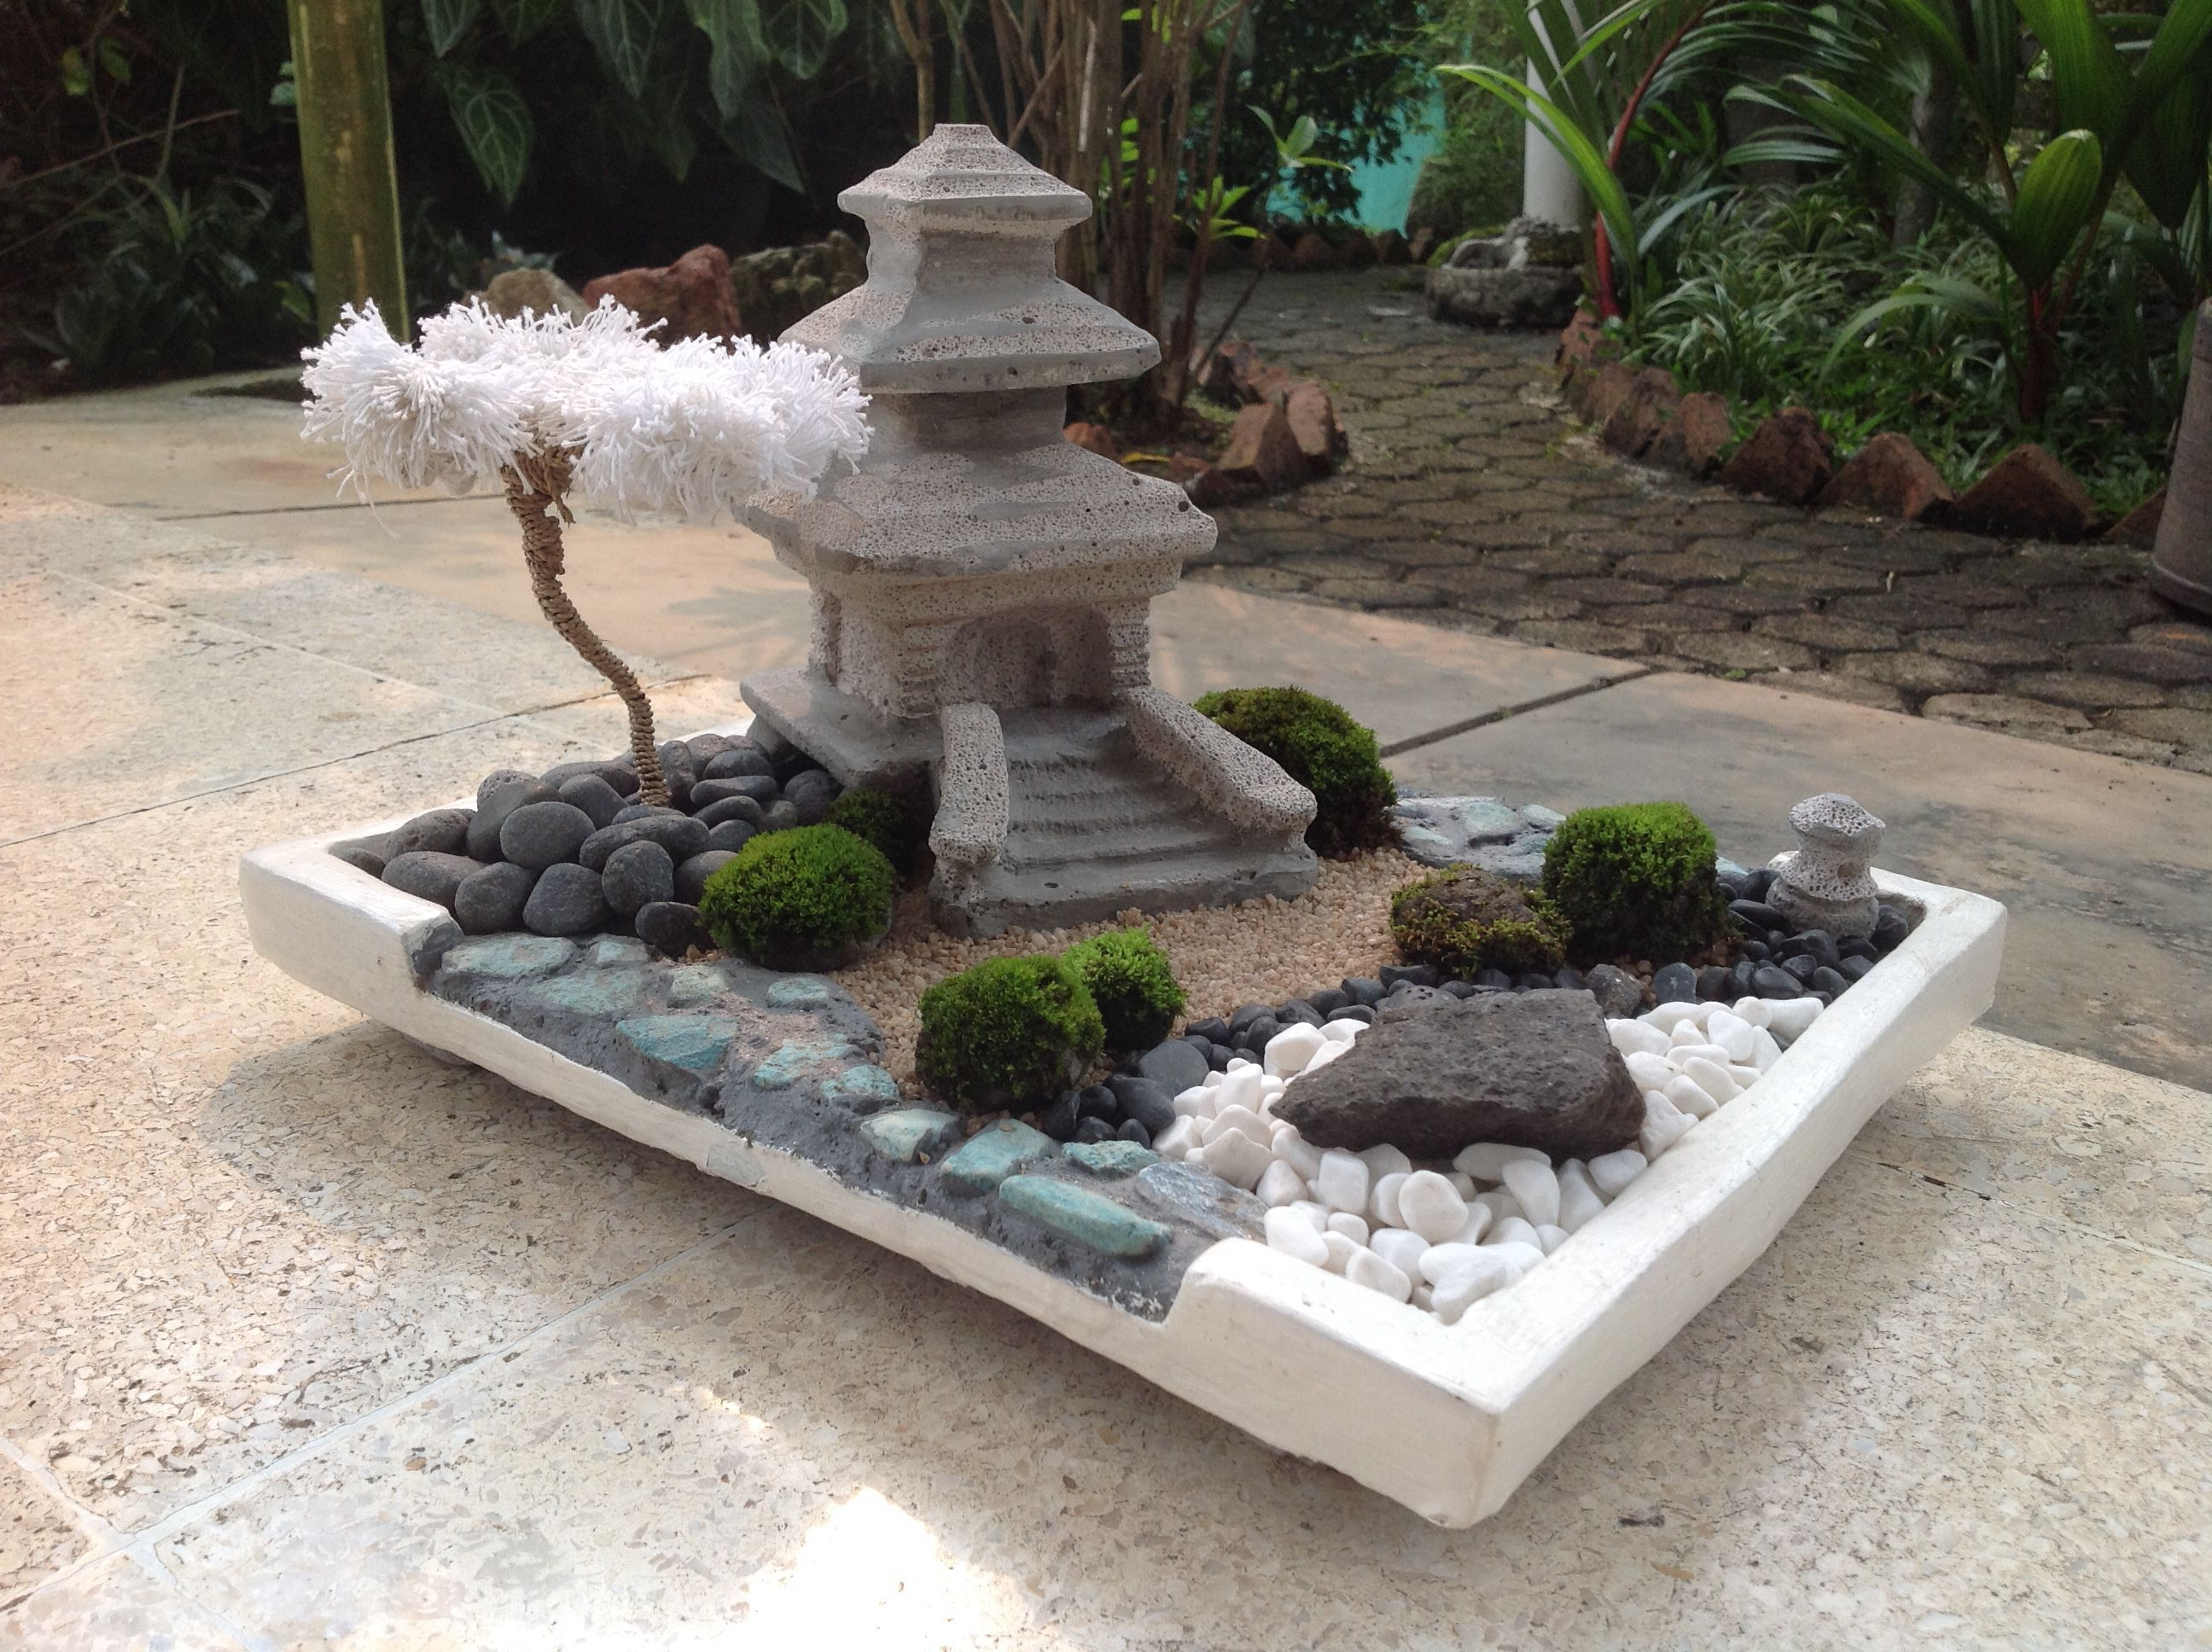 Breathtaking Awesome Mini Zen Garden Use the box cutter to